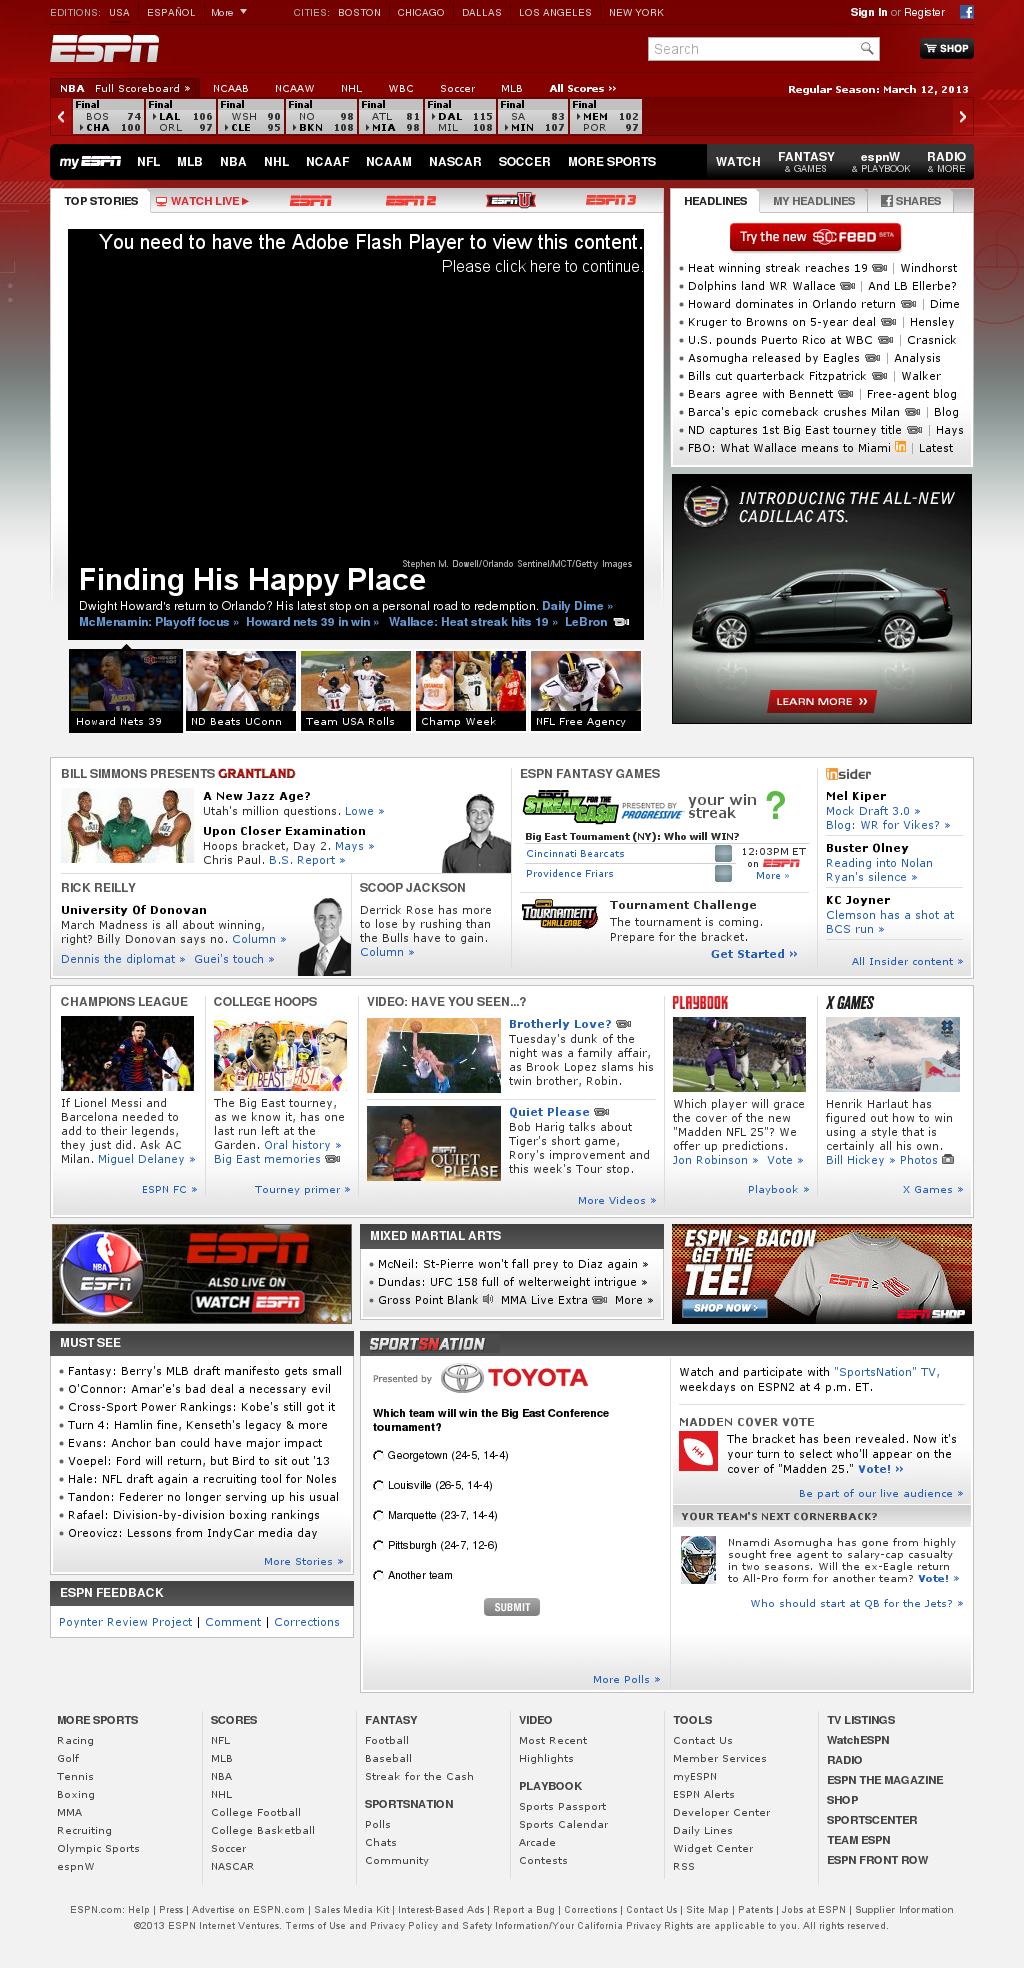 ESPN at Wednesday March 13, 2013, 7:06 a.m. UTC